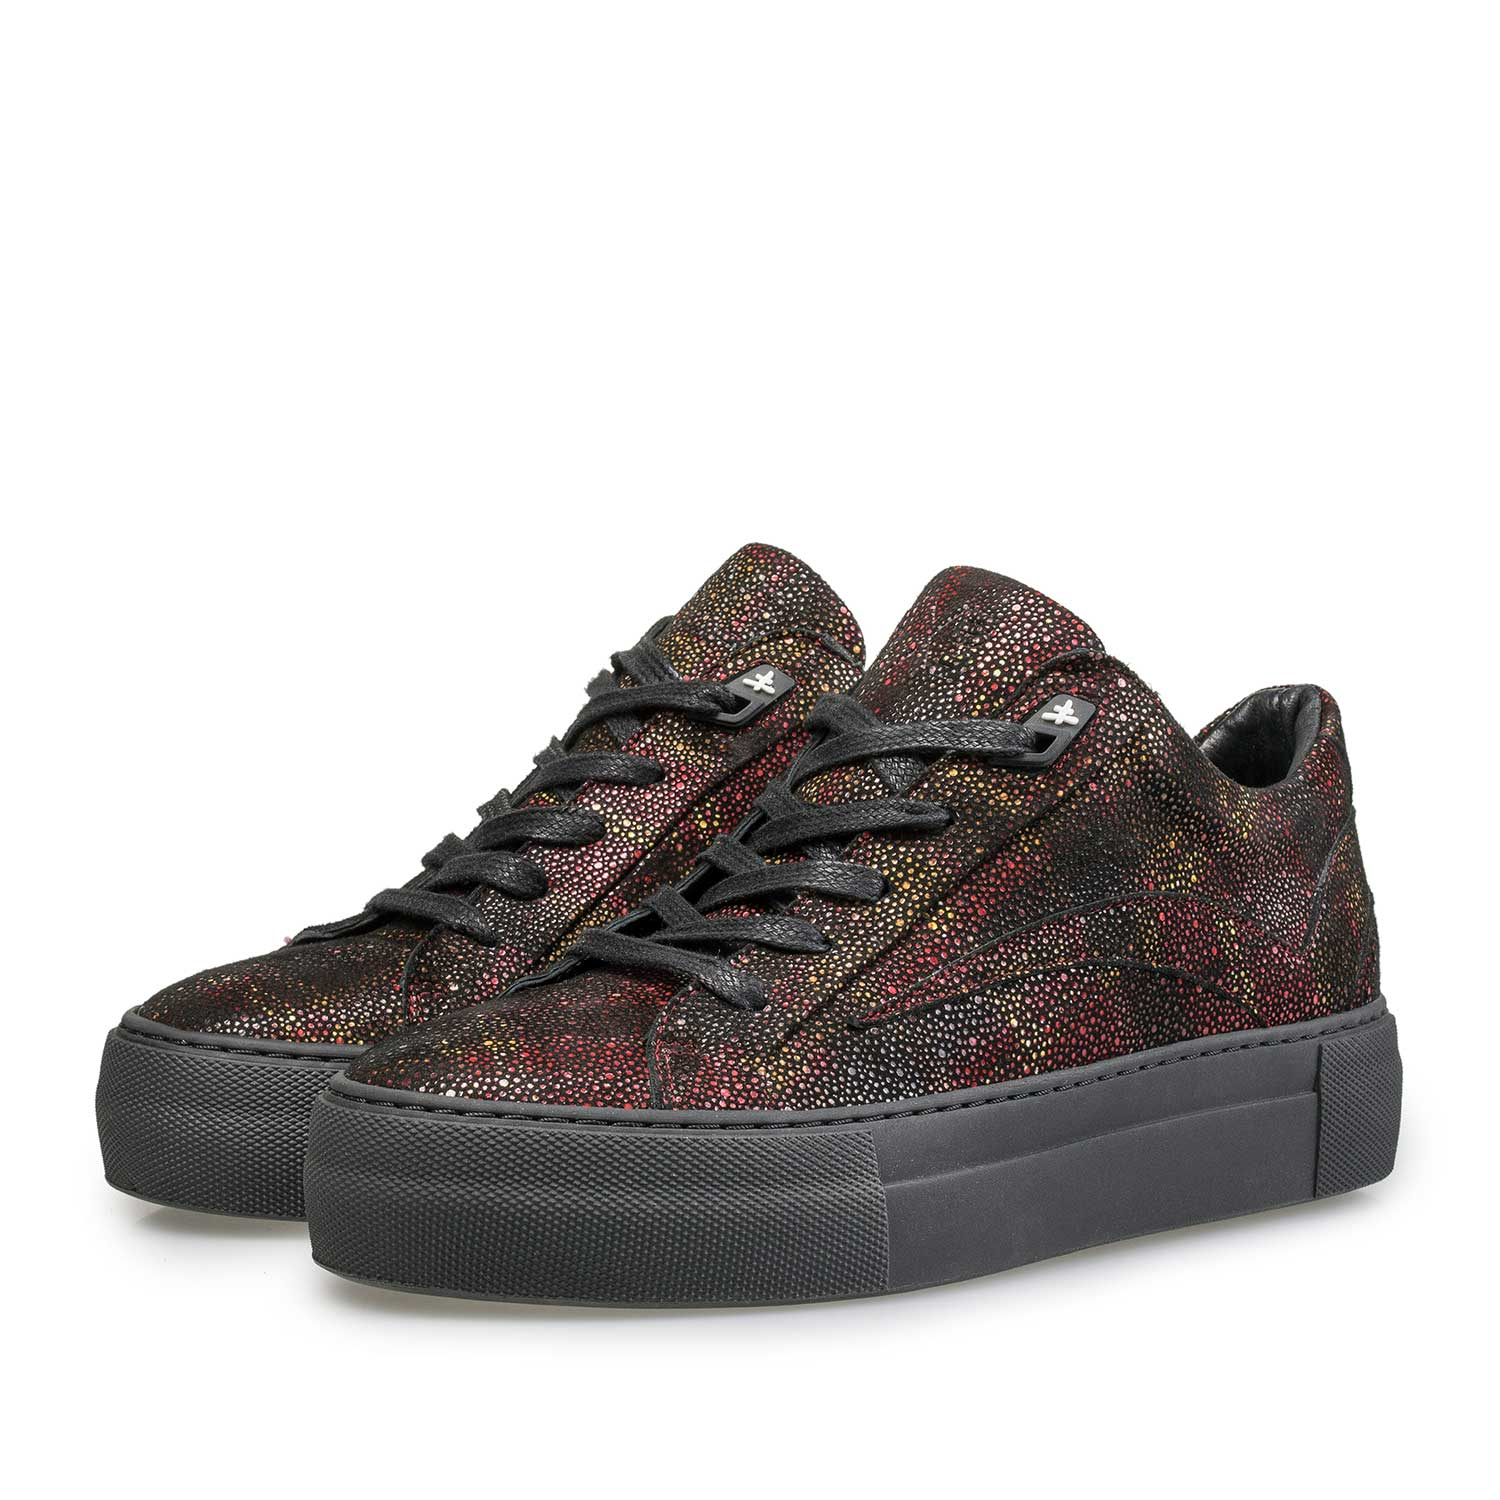 85252/06 - Leather sneaker with red check pattern